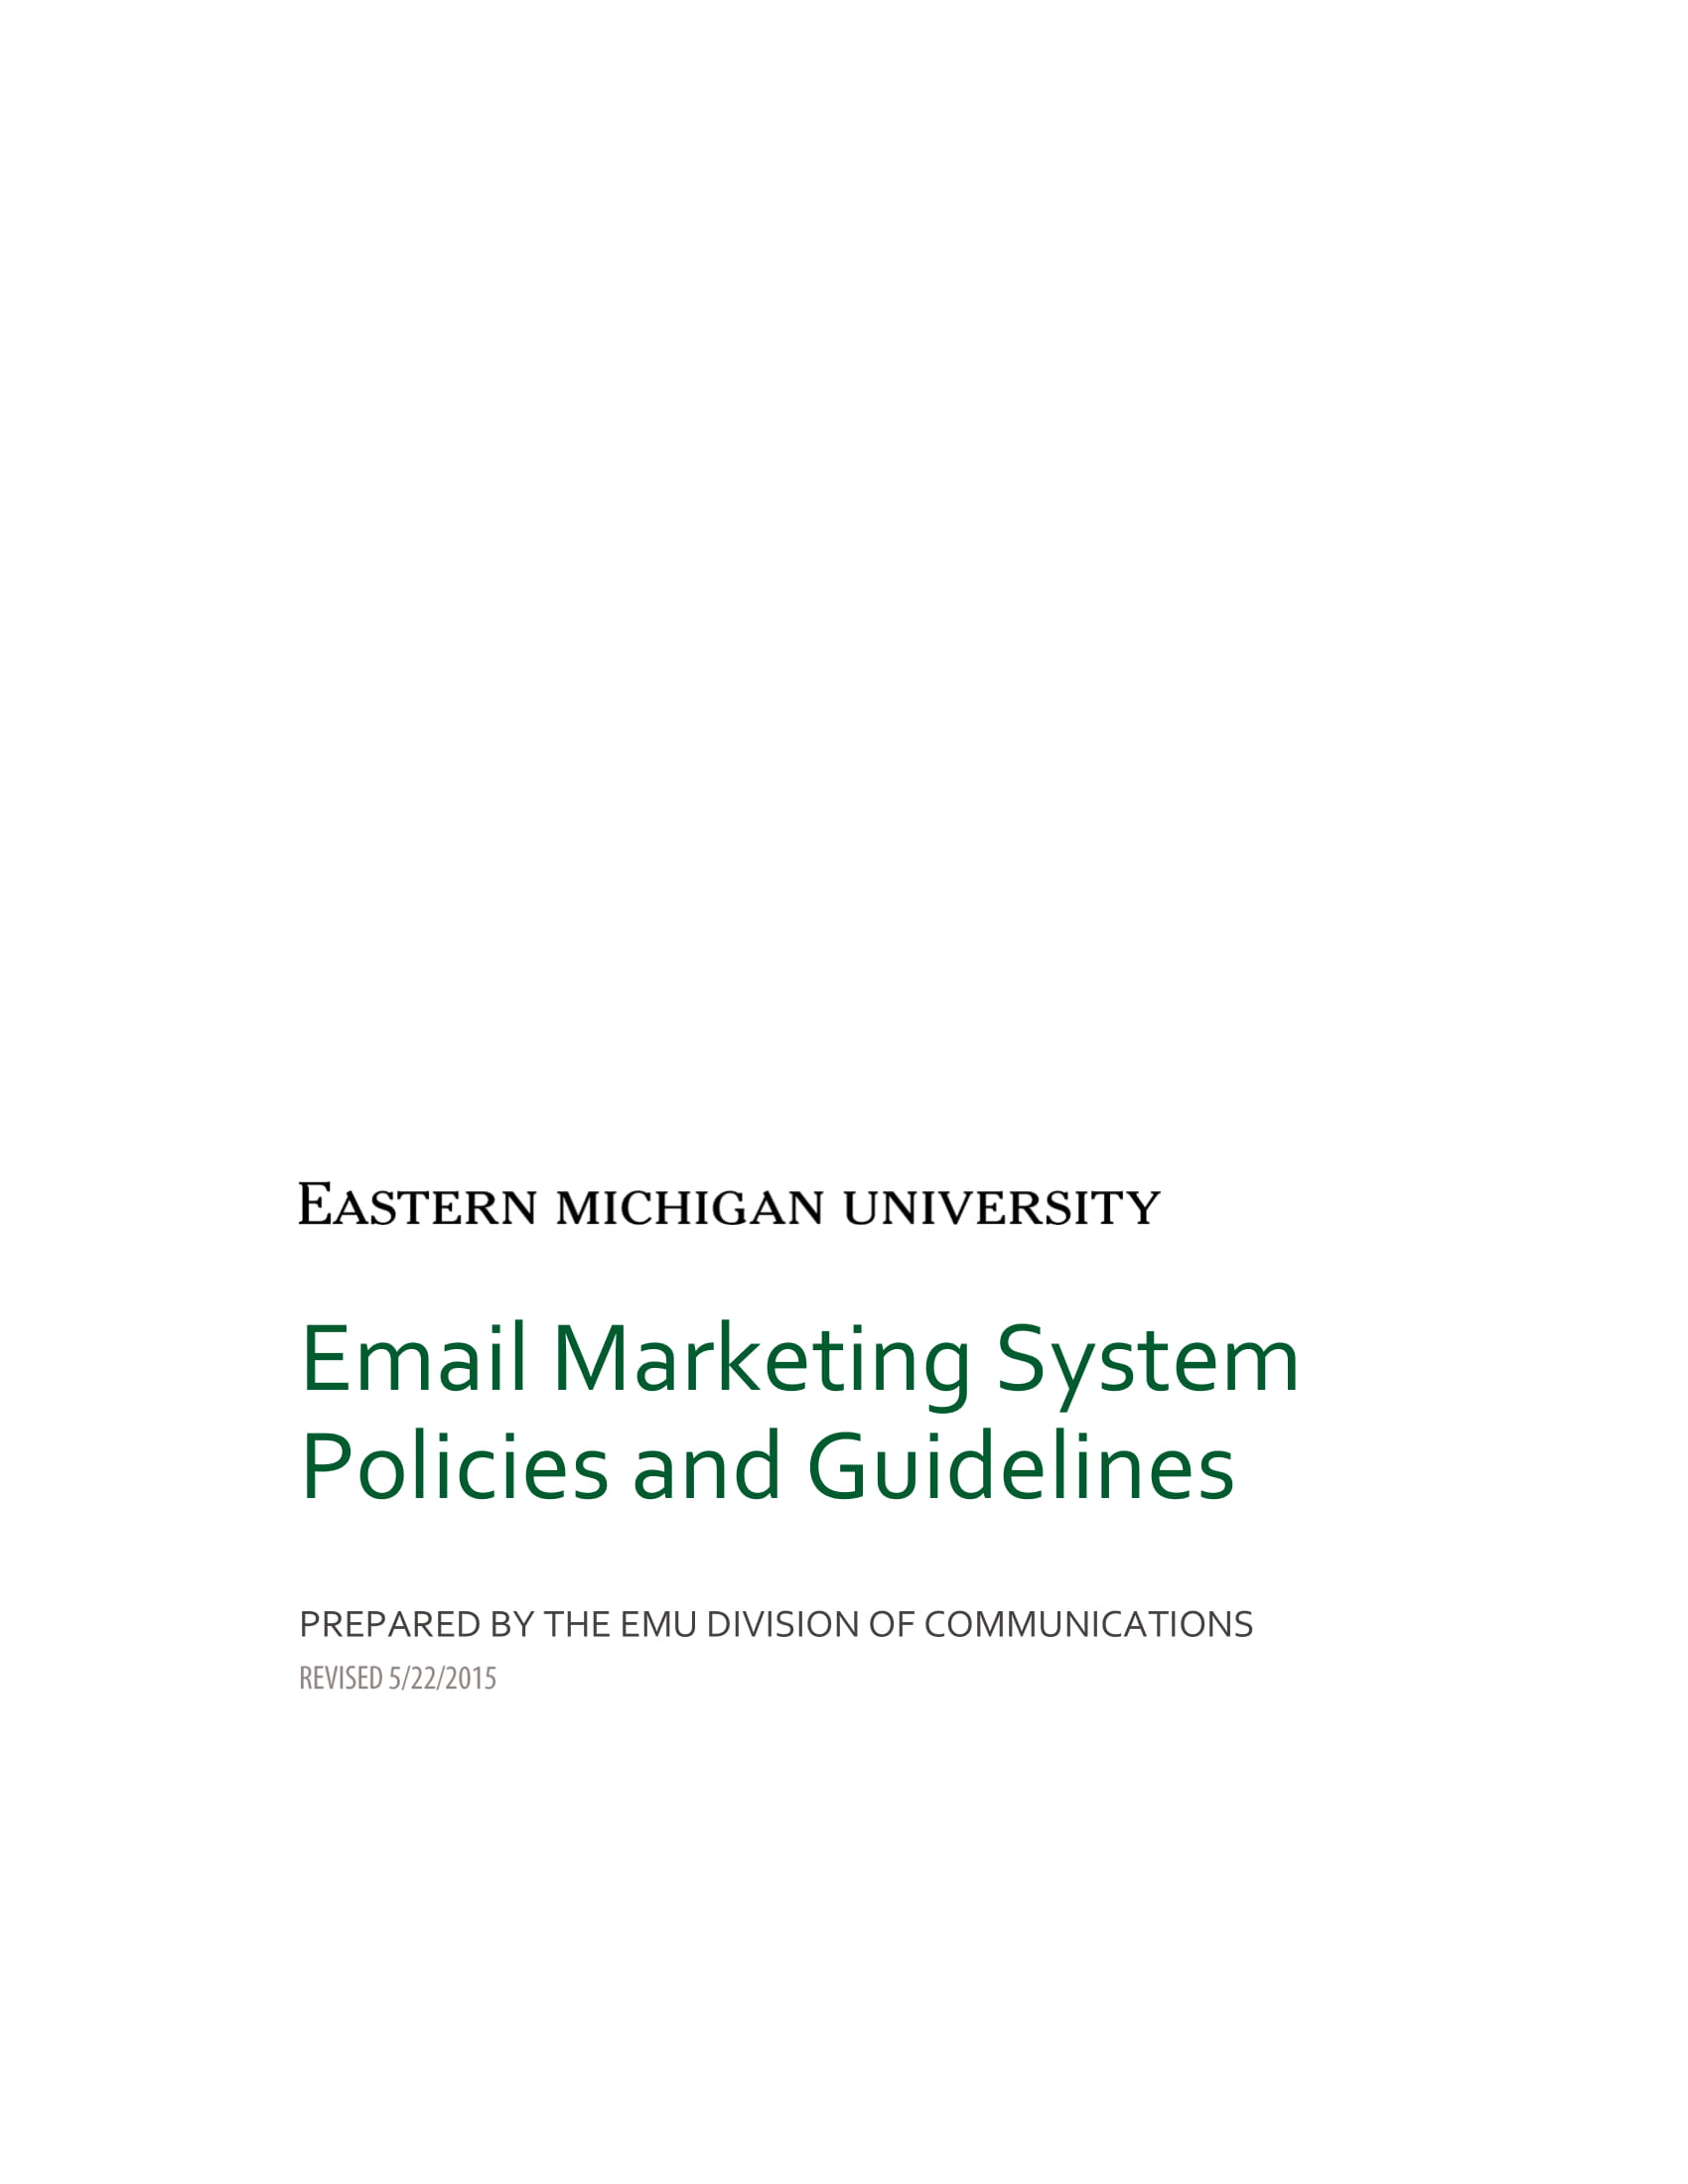 marketing plan email marketing system policies and guidelines 1